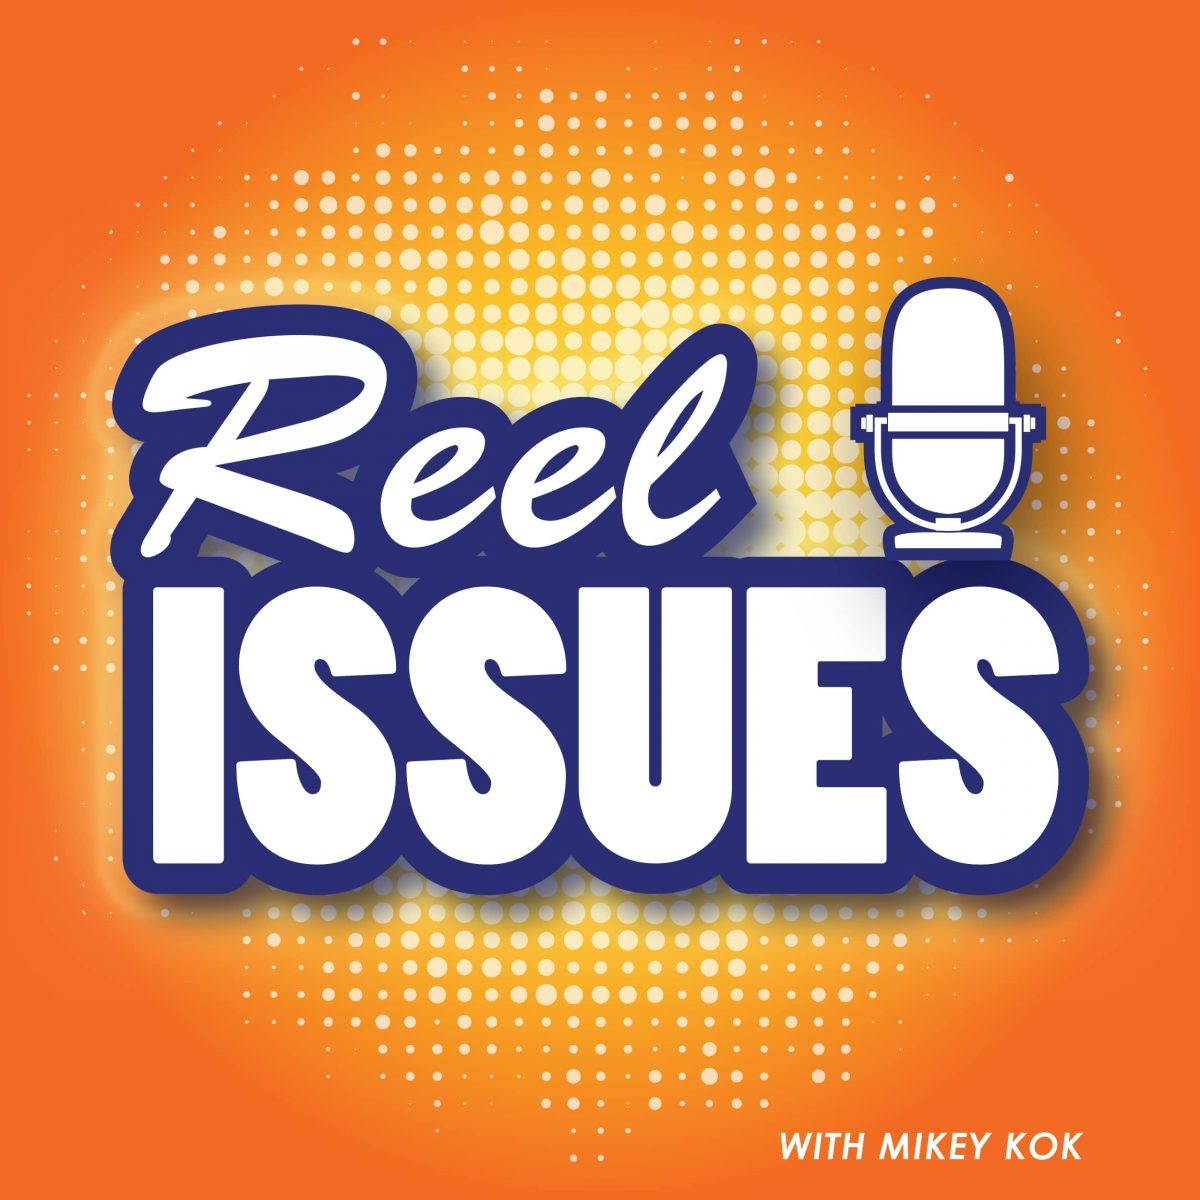 Reel Issues Logo - Michael Kok